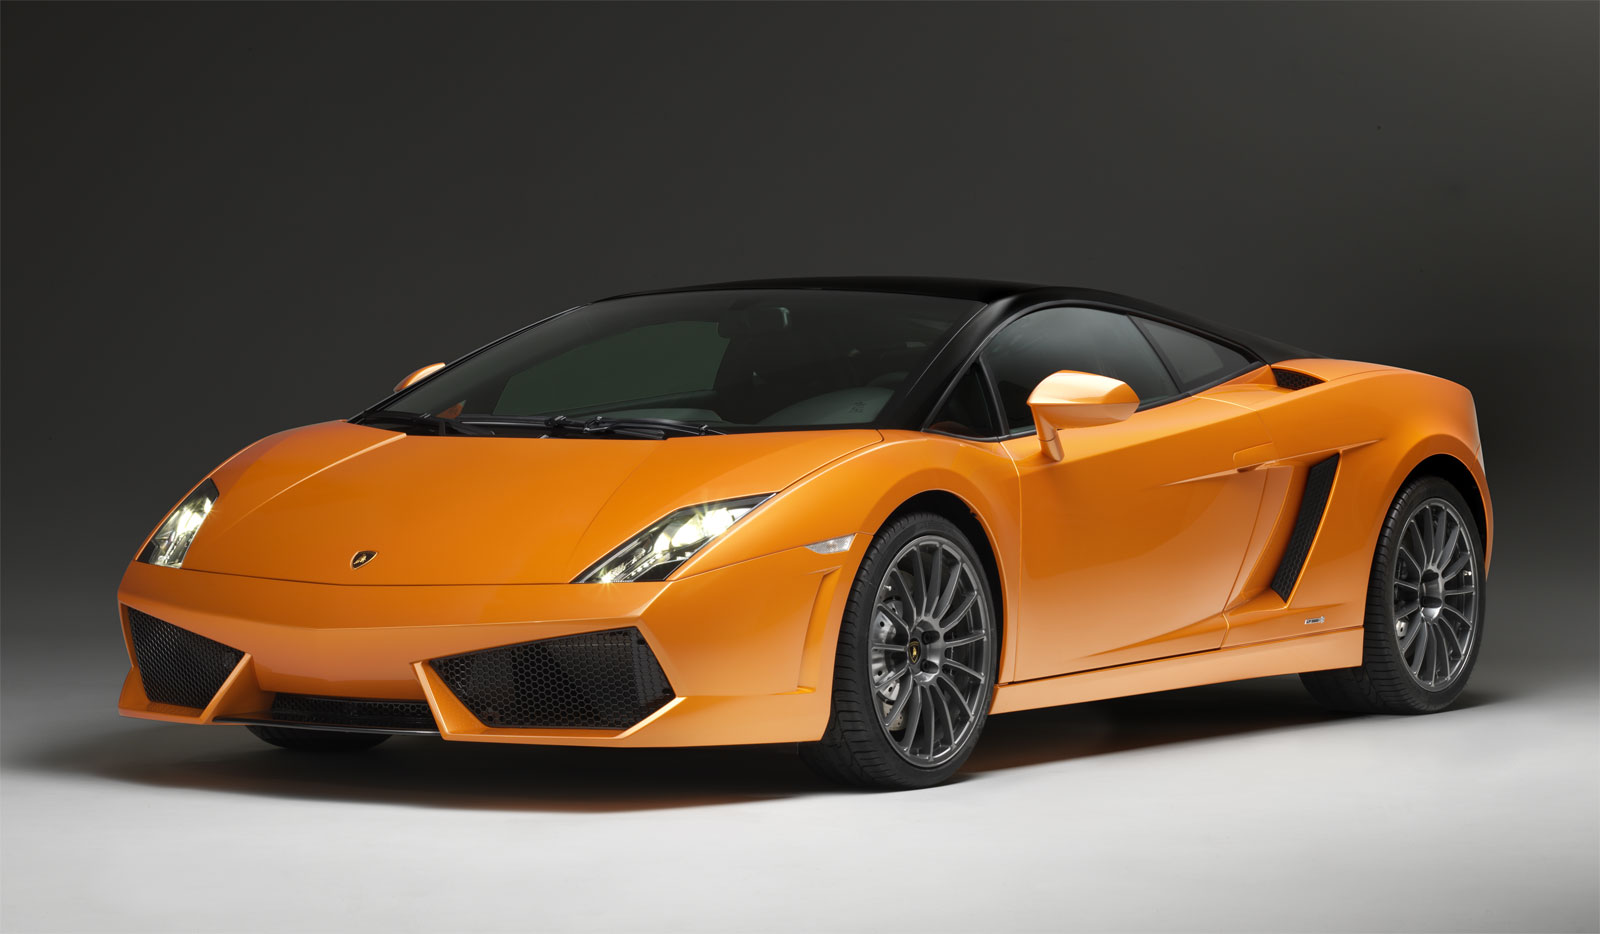 car wallpapers your selected image as your desktop wallpaper you can 1600x934